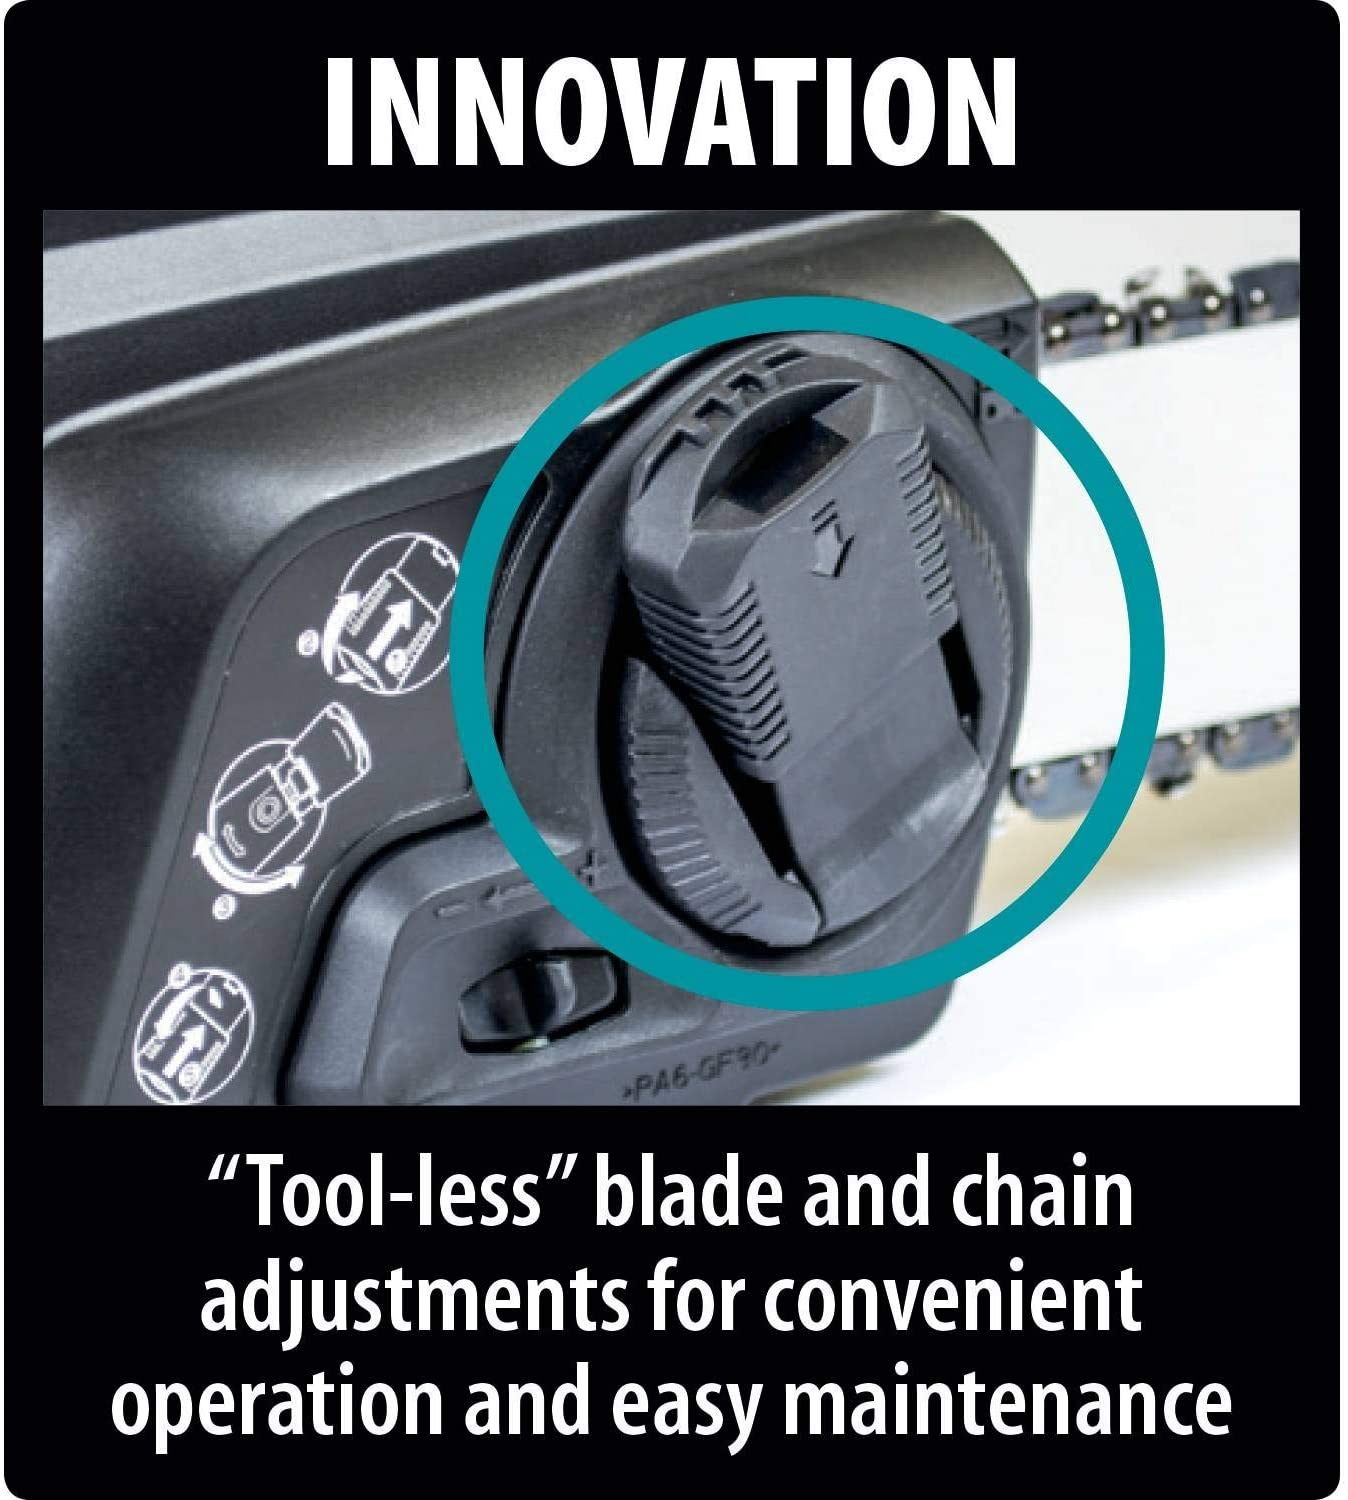 Makita UC4051A Chainsaws product image 4